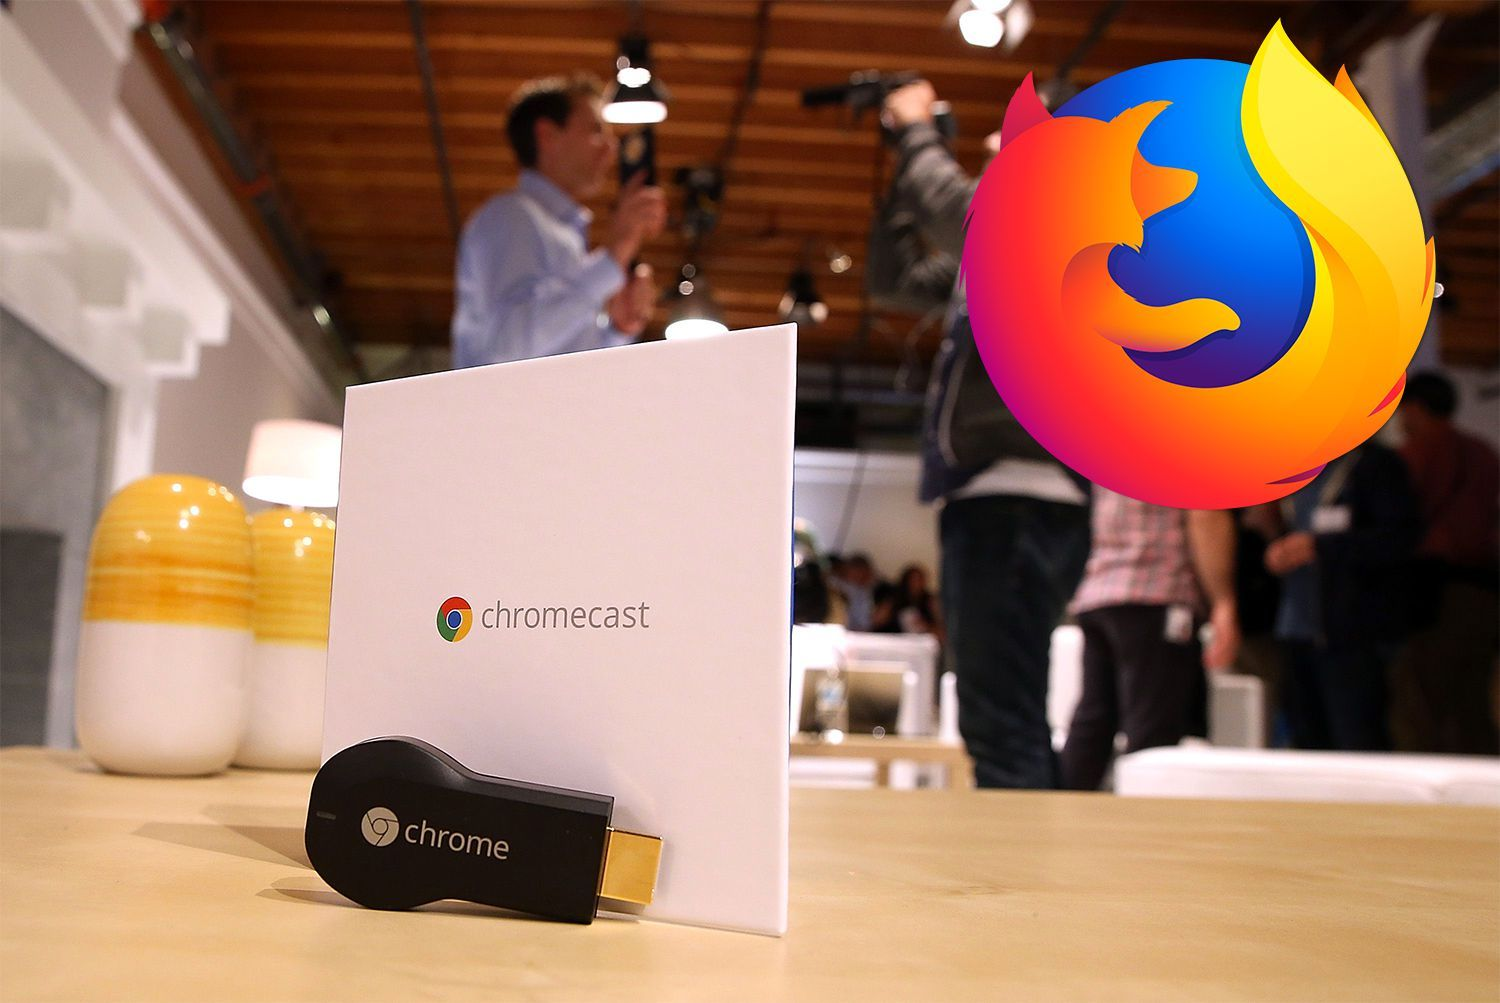 a07baa606ab7c7be553d6dbc48b6d3f0 - How To Cast To Chromecast With Vpn